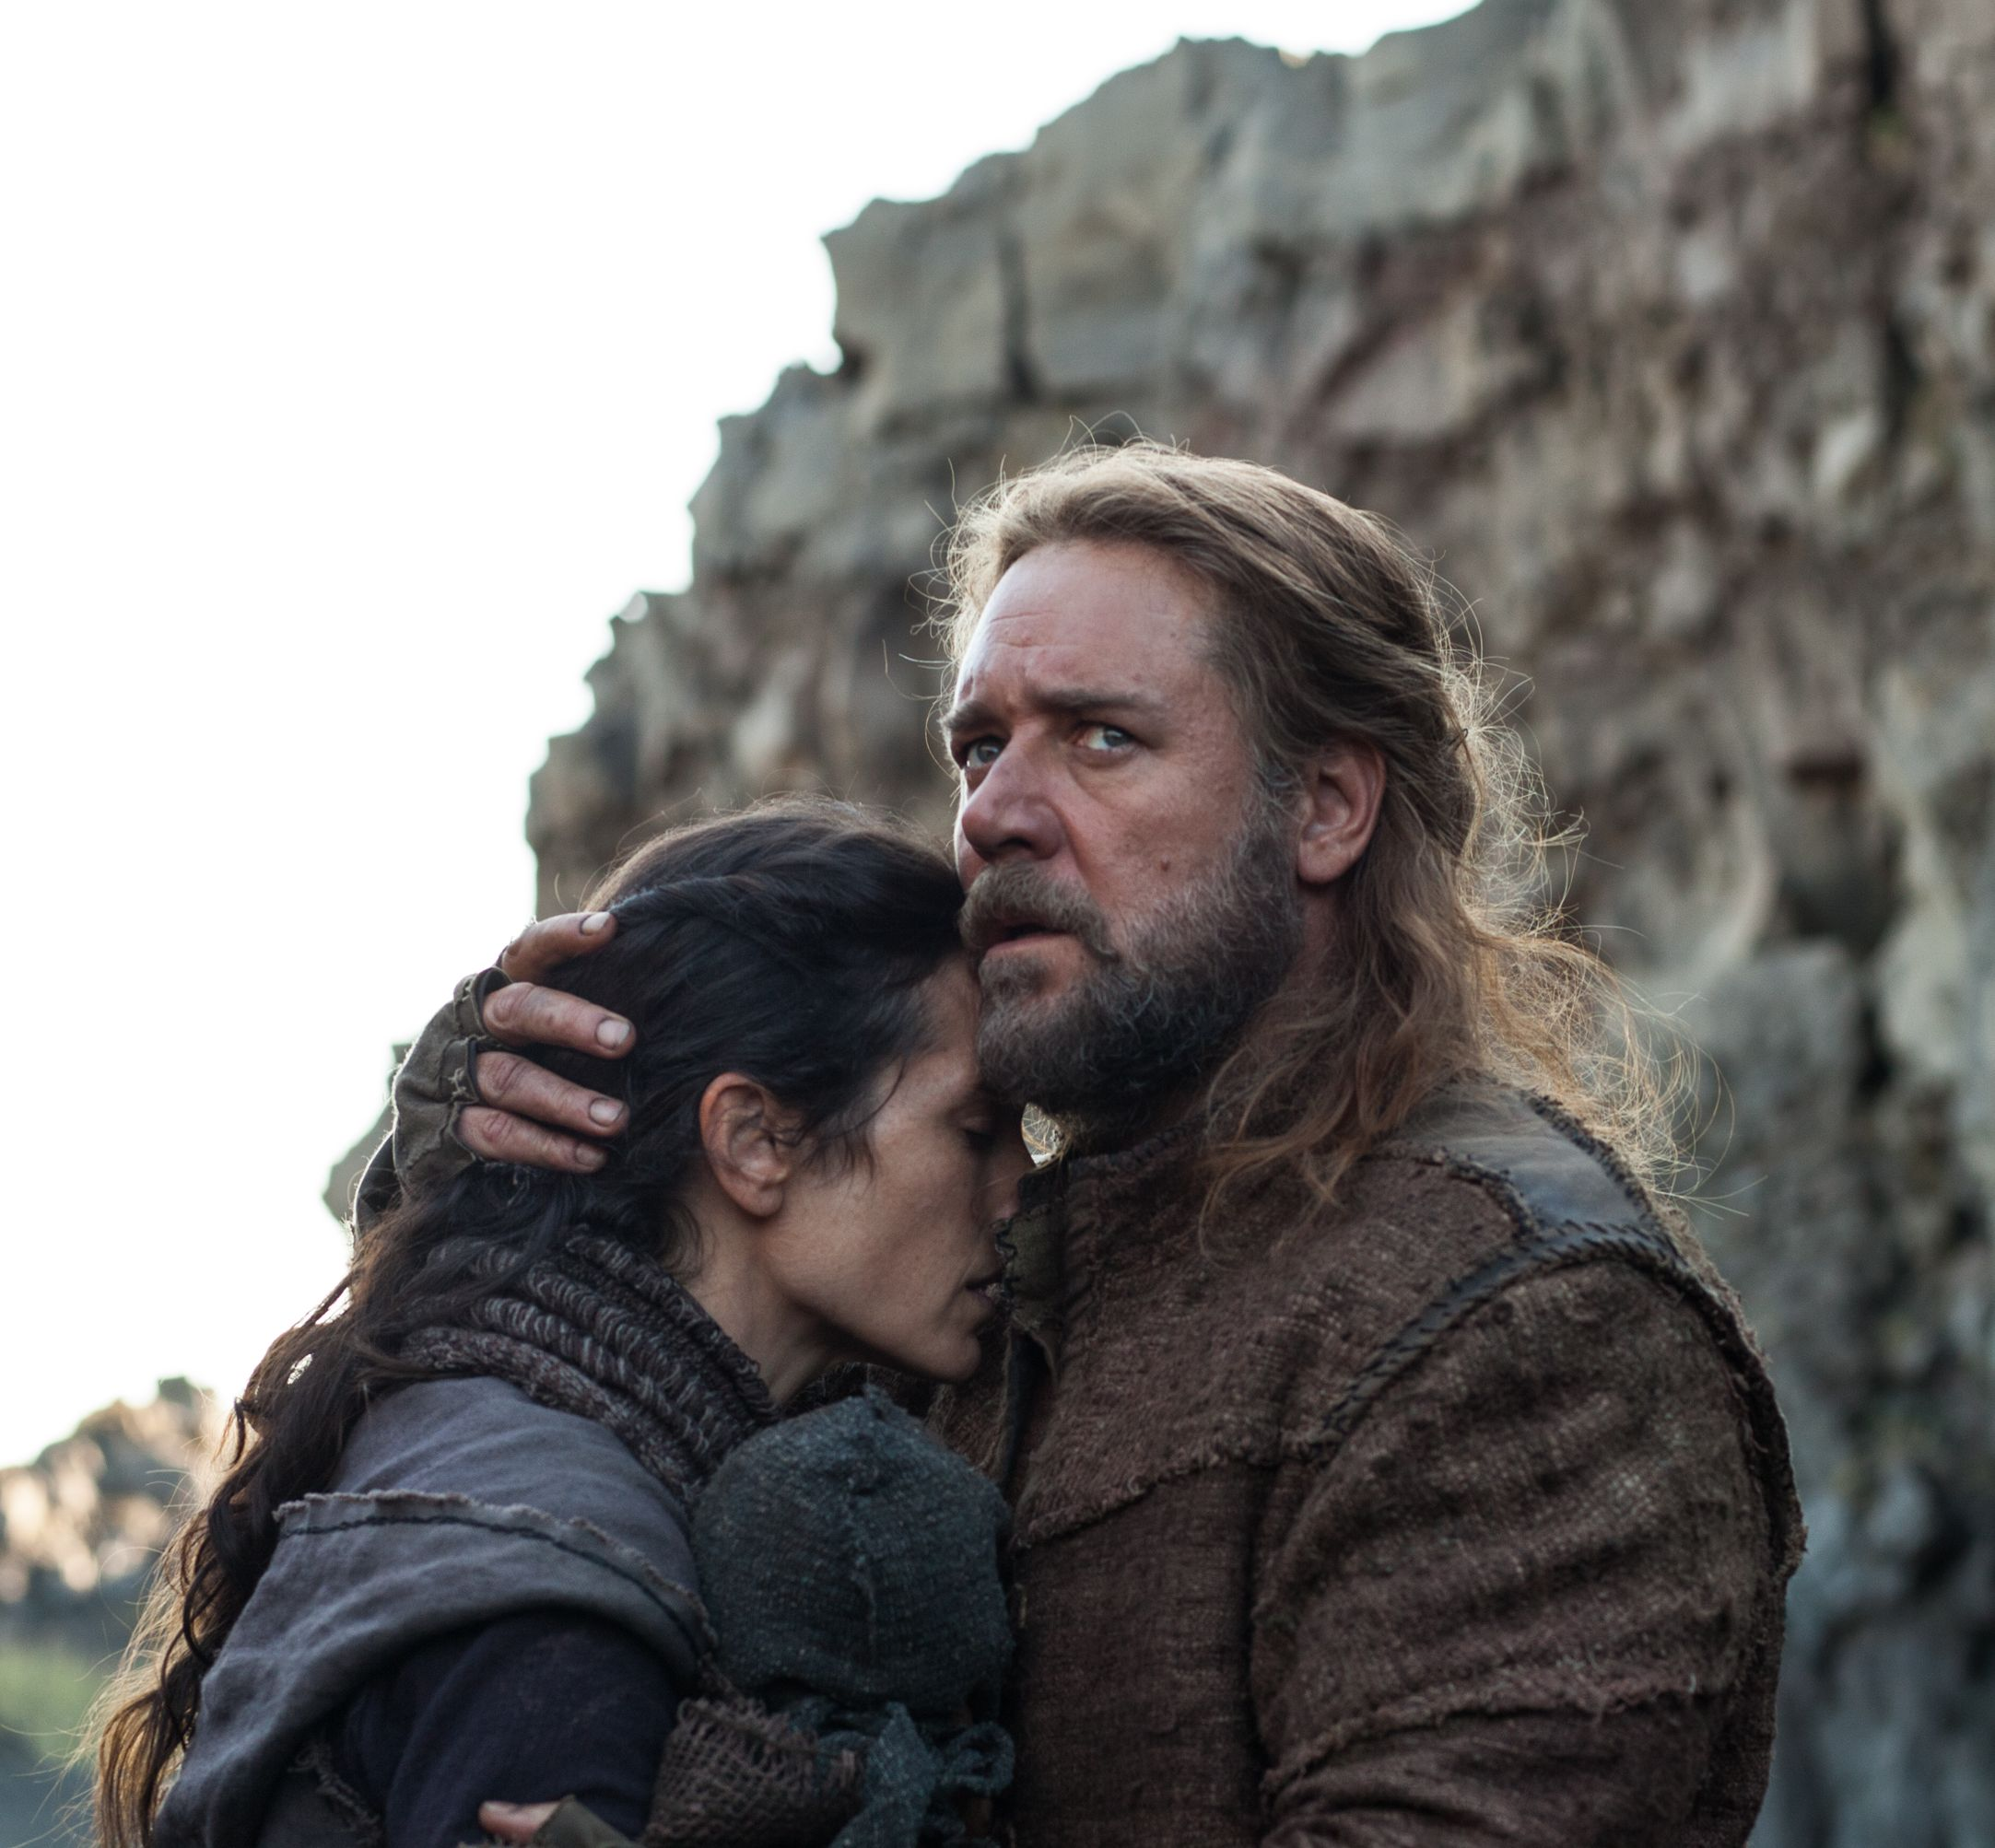 Noah (Russell Crowe) protecting wife and kid